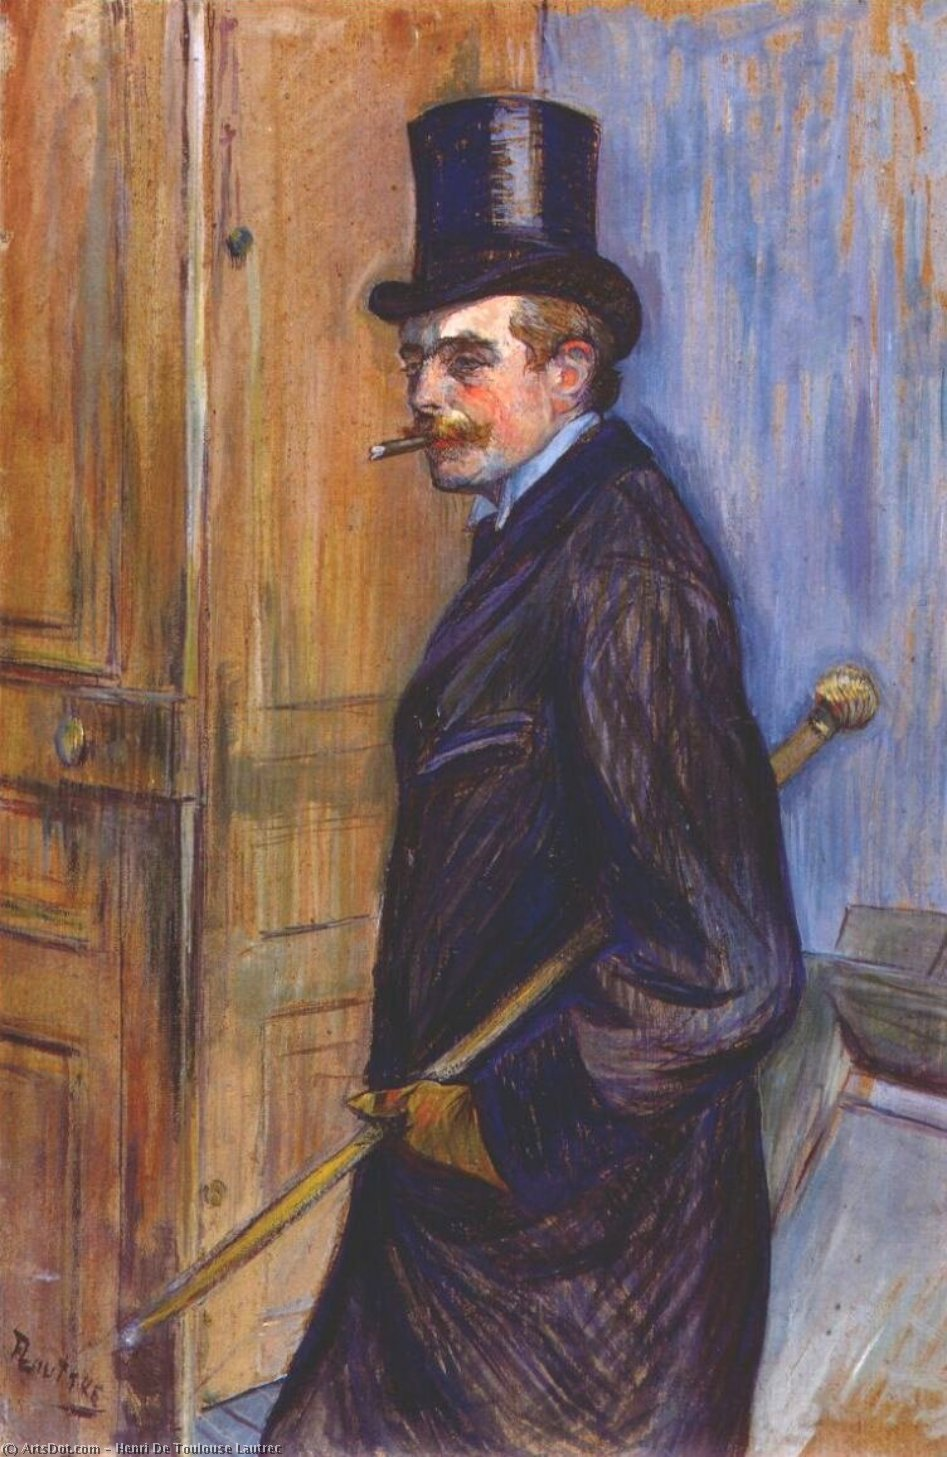 monsieur louis pascal, öl von Henri De Toulouse Lautrec (1864-1901, Second French Empire)